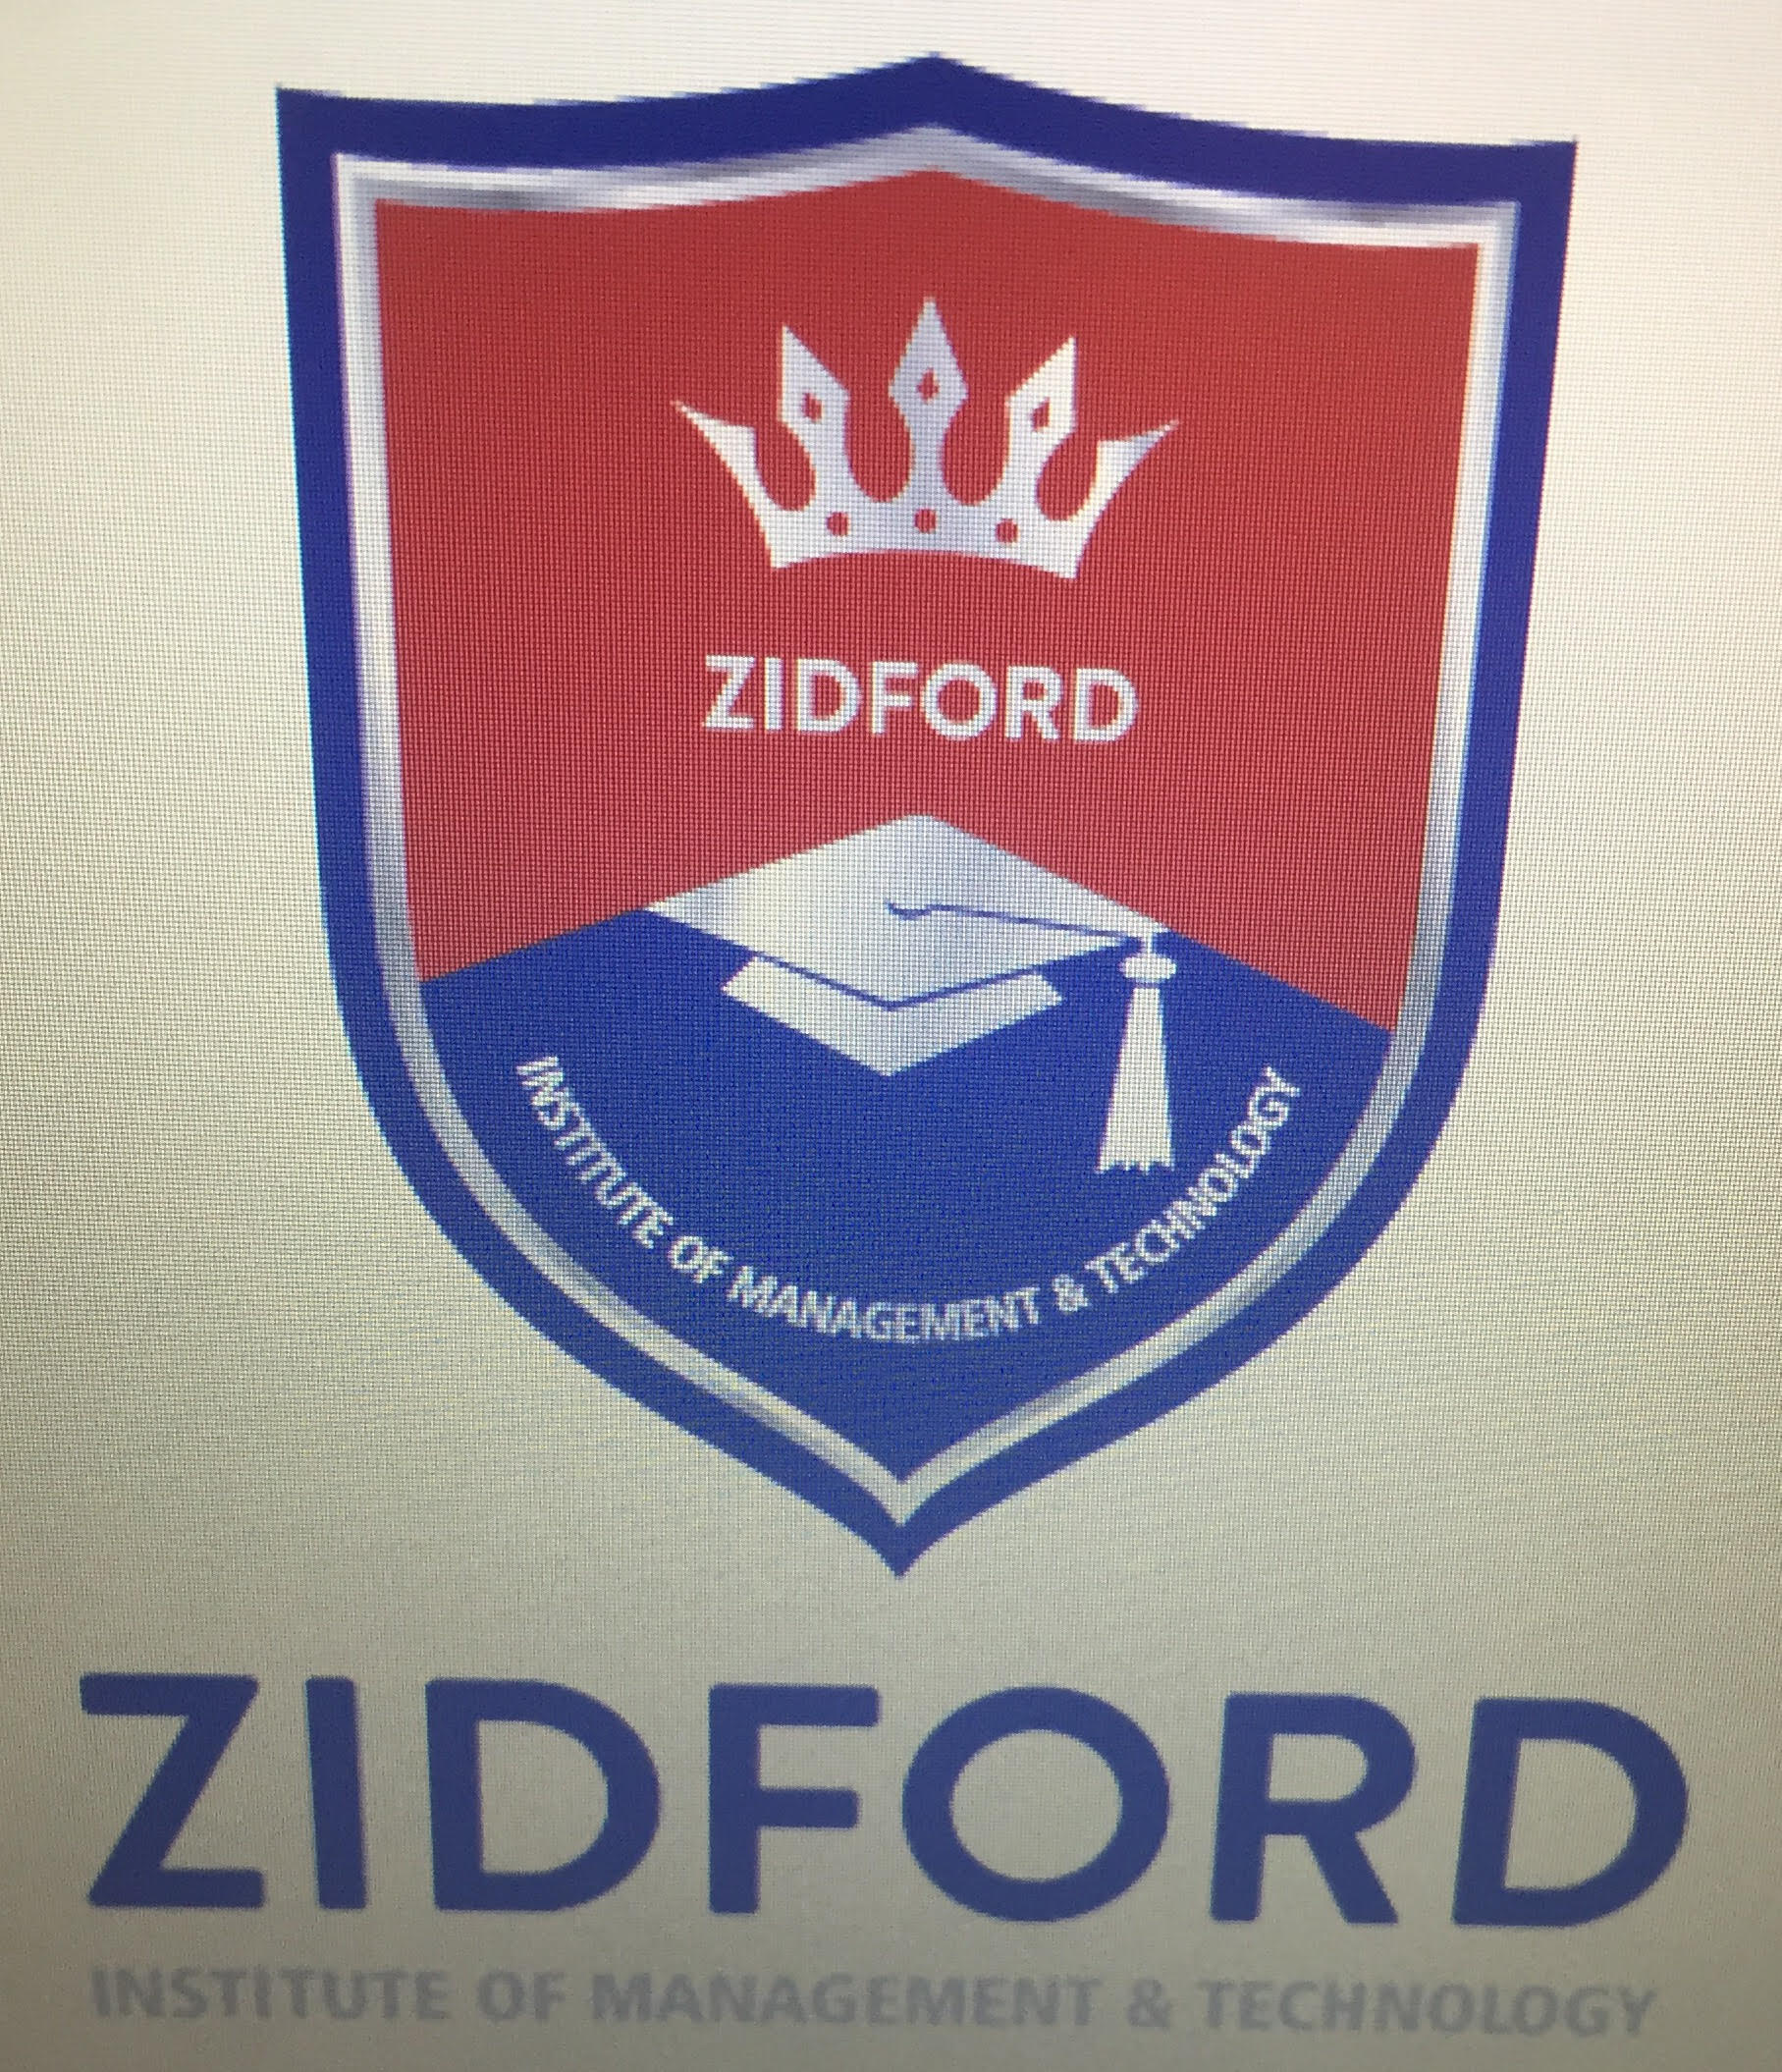 More about Zidford Institute of Management and Technology